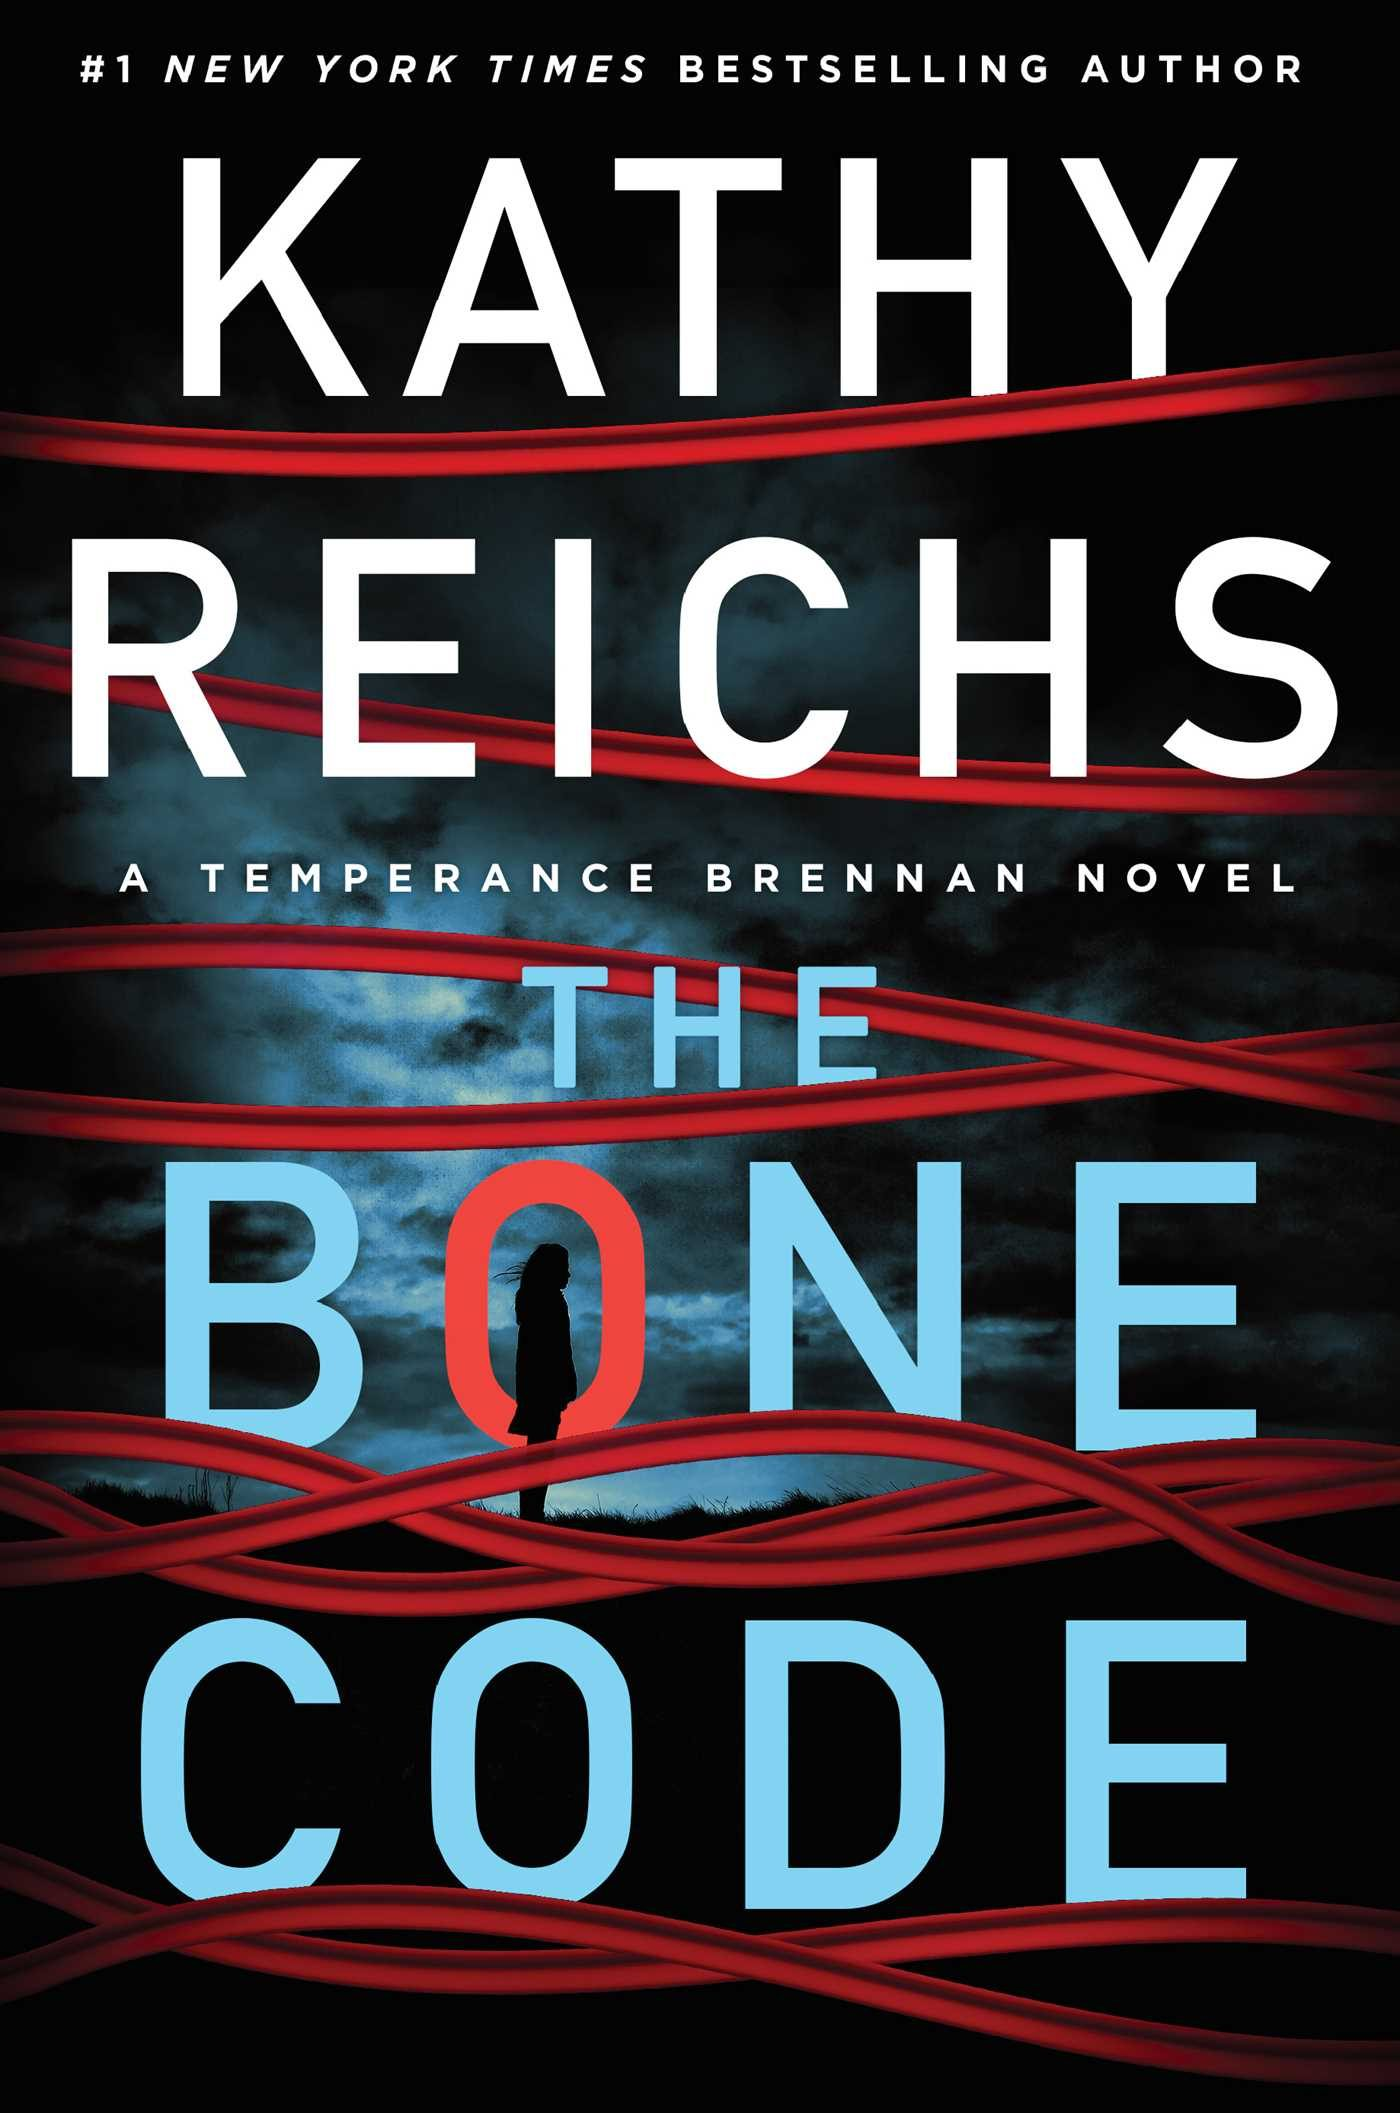 The Bone Code (Temperance Brennan 20) Release Date? Kathy Reichs 2021 New Releases